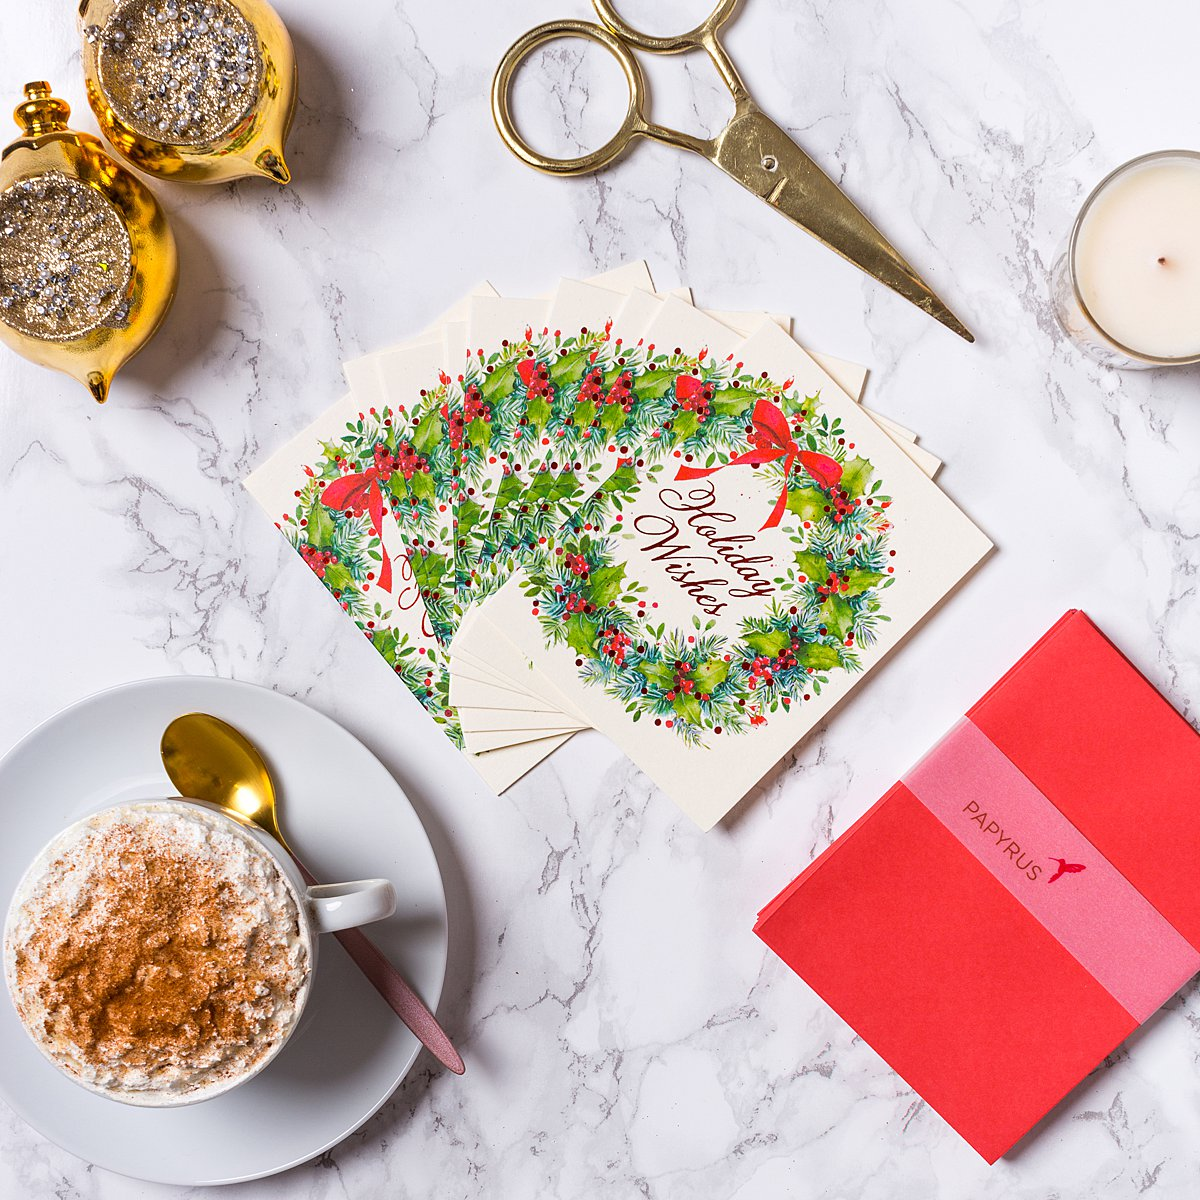 Colourful content creation for Papyrus stationery. Still life and lifestyle product photography by Marianne Taylor.